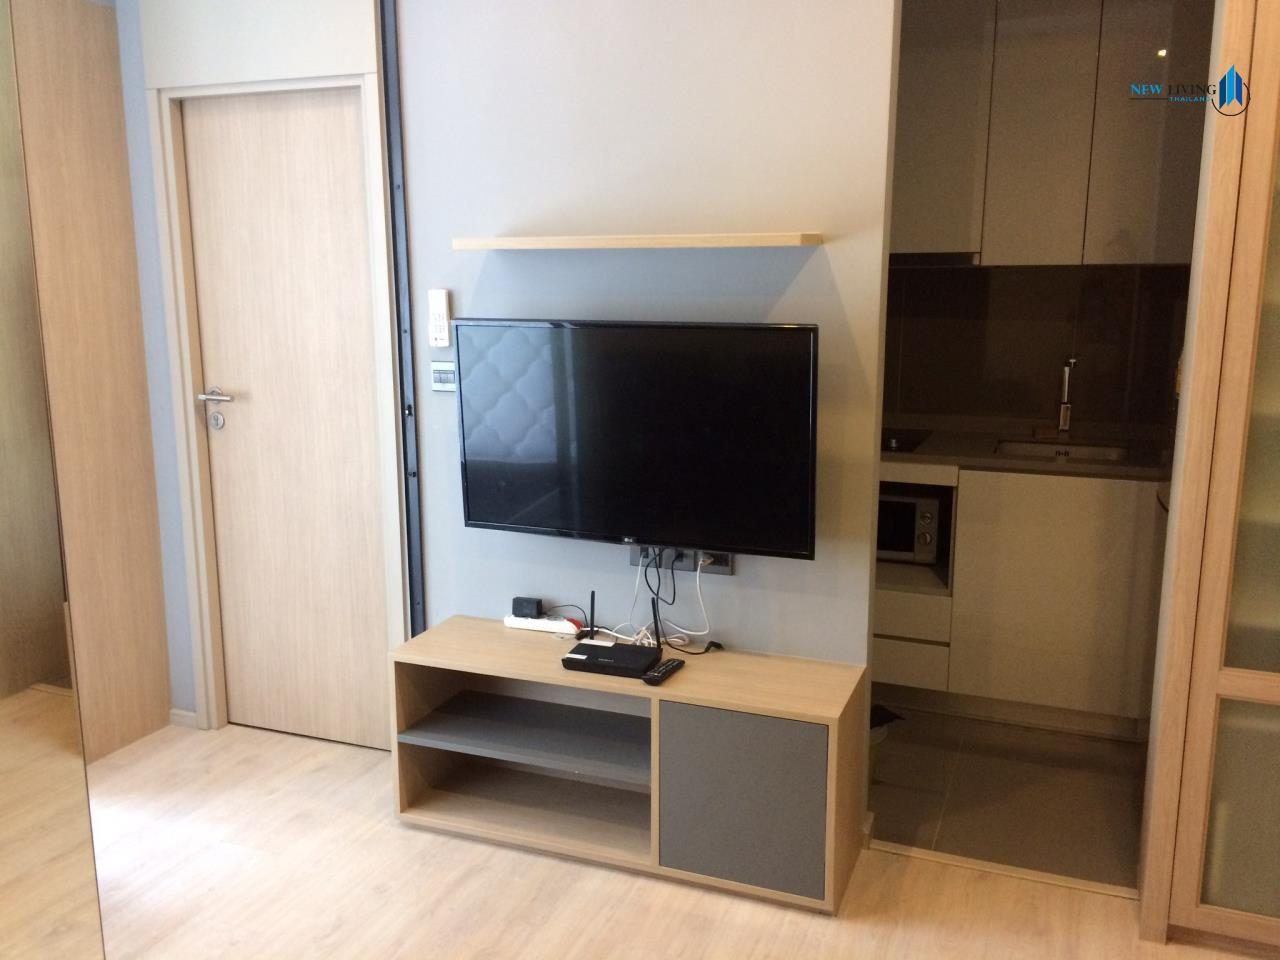 New Living Thailand Agency's **** Urgent Sale M Thonglor, 1 bedroom, beautiful unit, 29 sq.m. 1